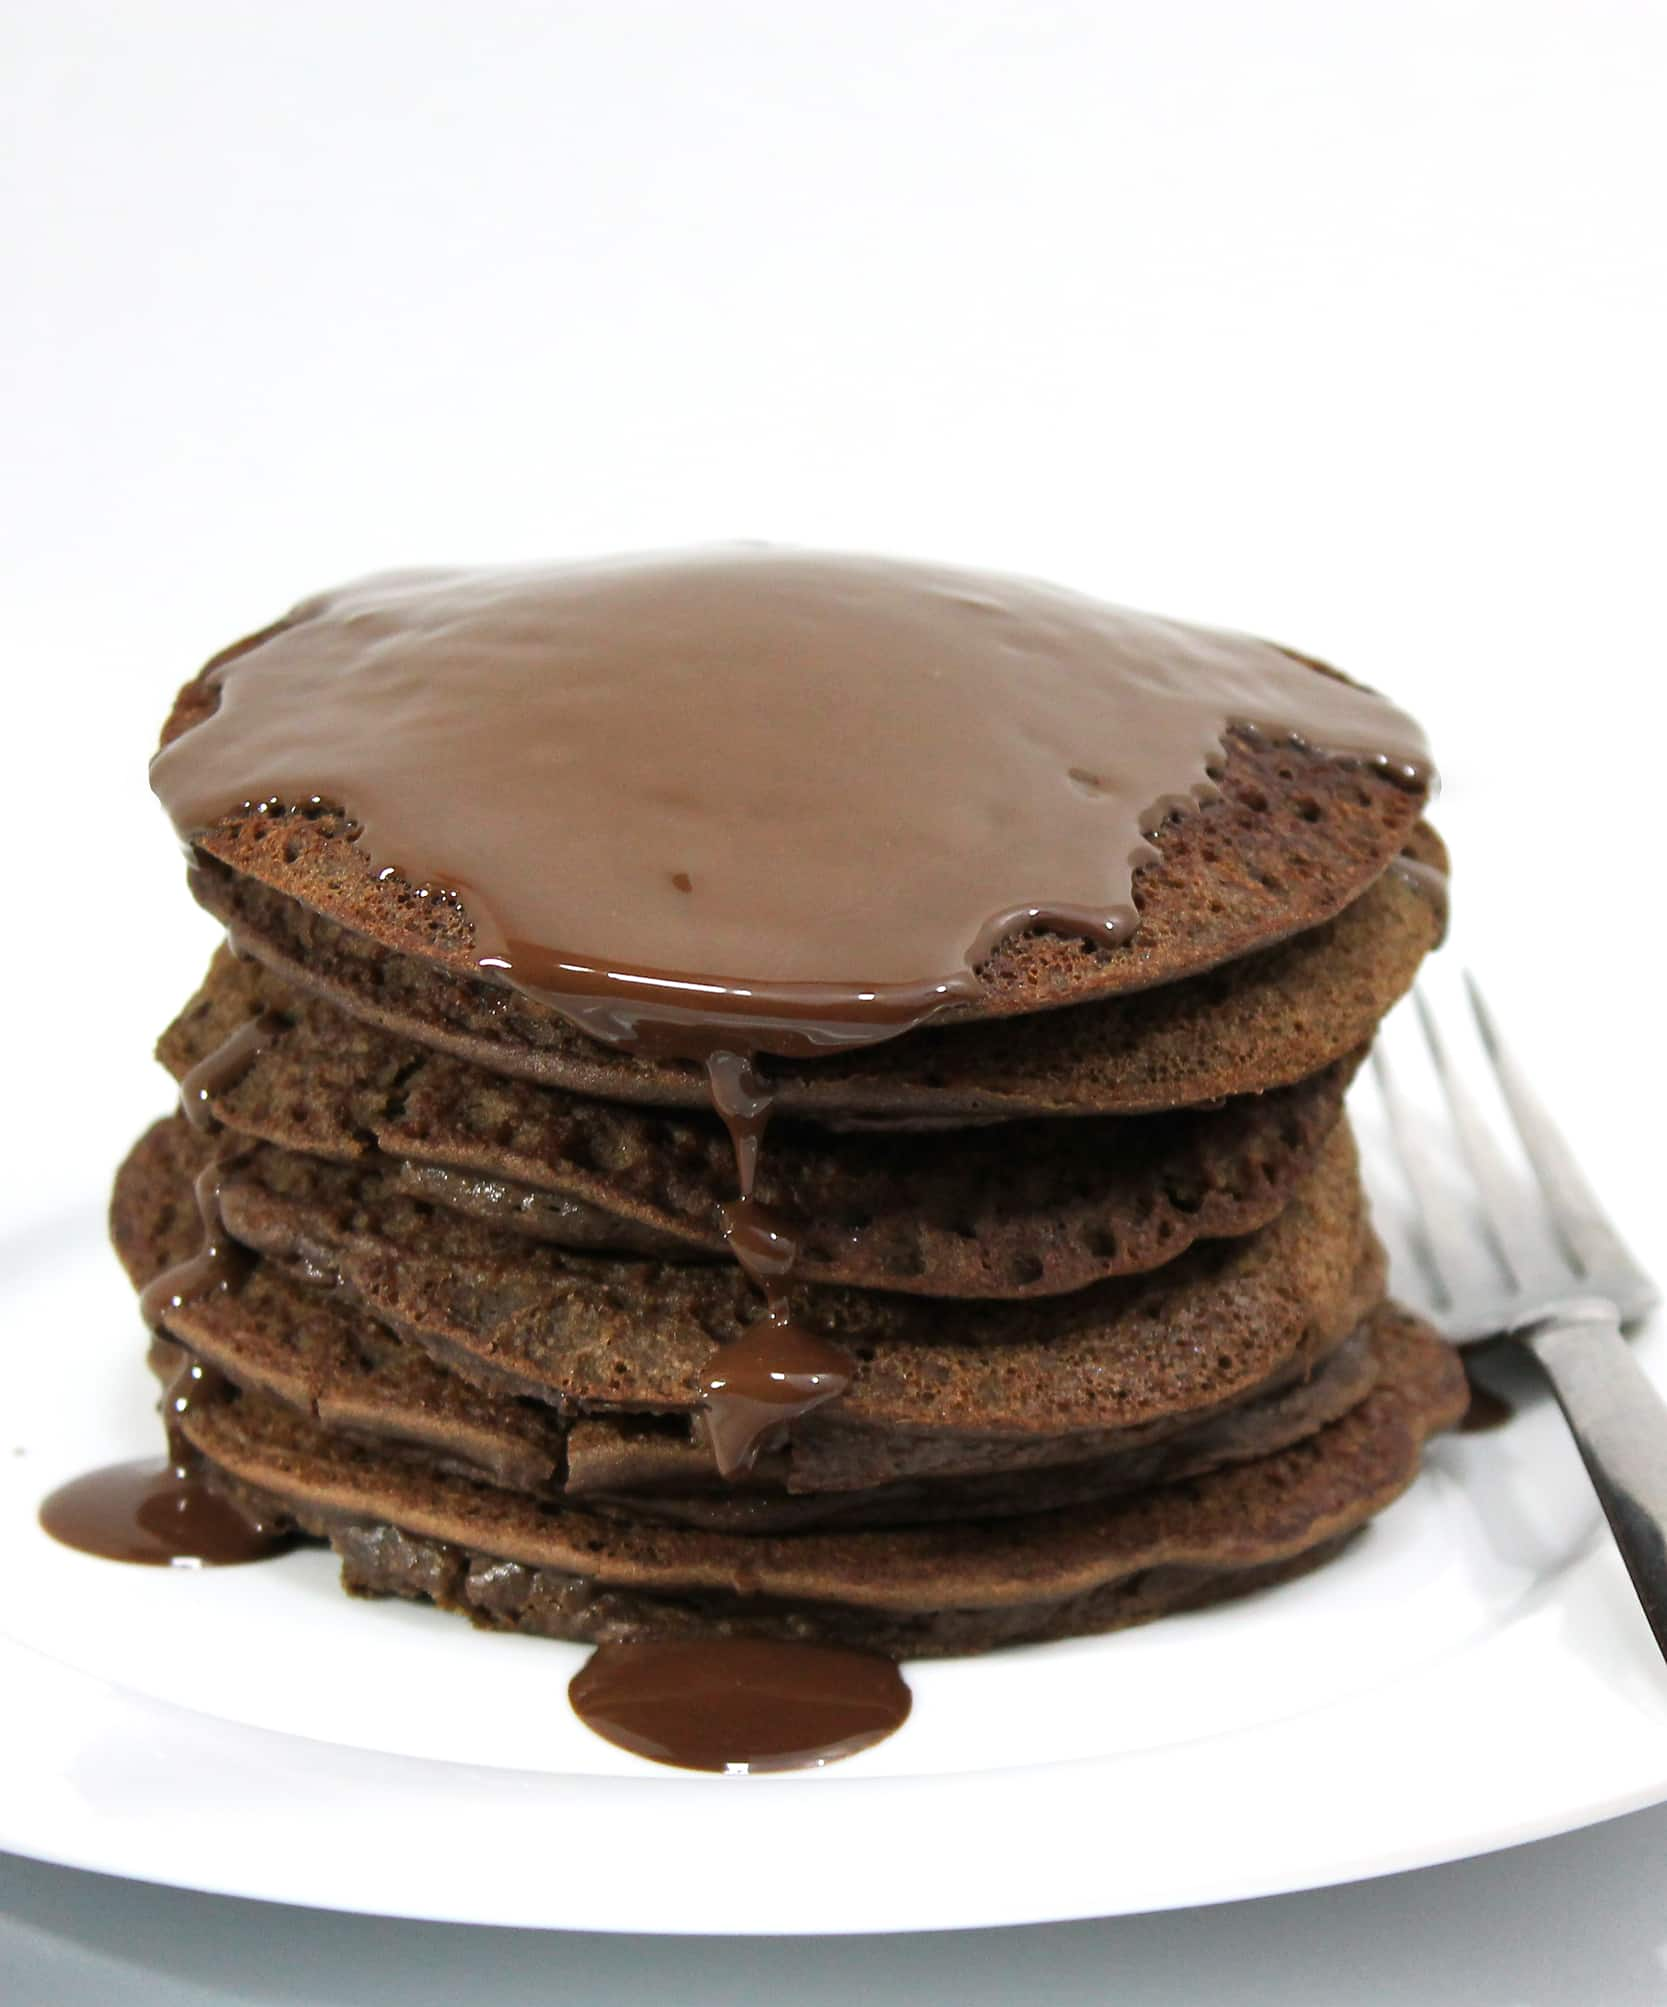 healthy chocolate lentil pancakes with chocolate sauce